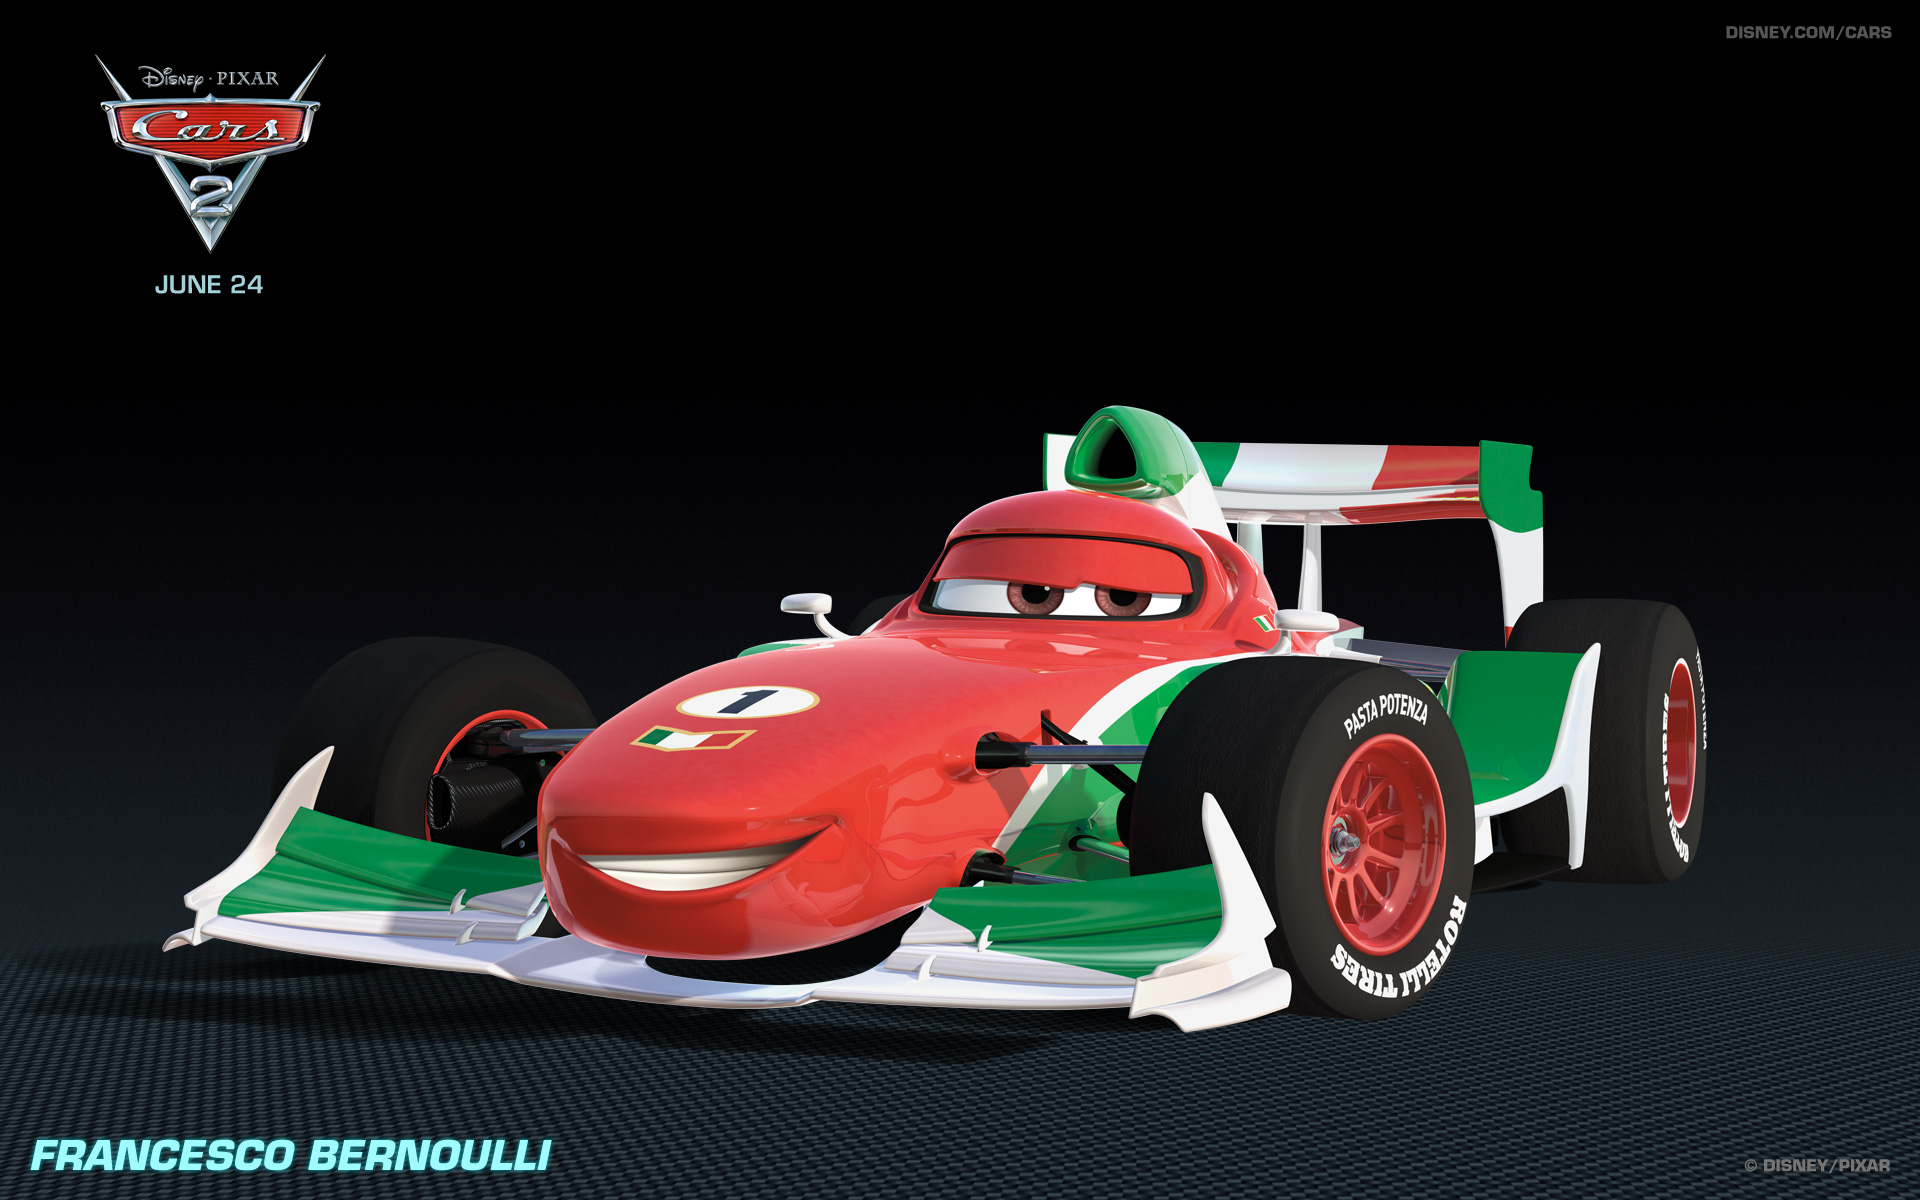 Francesco Bernoulli Pixar Cars Wiki Fandom Powered By Wikia